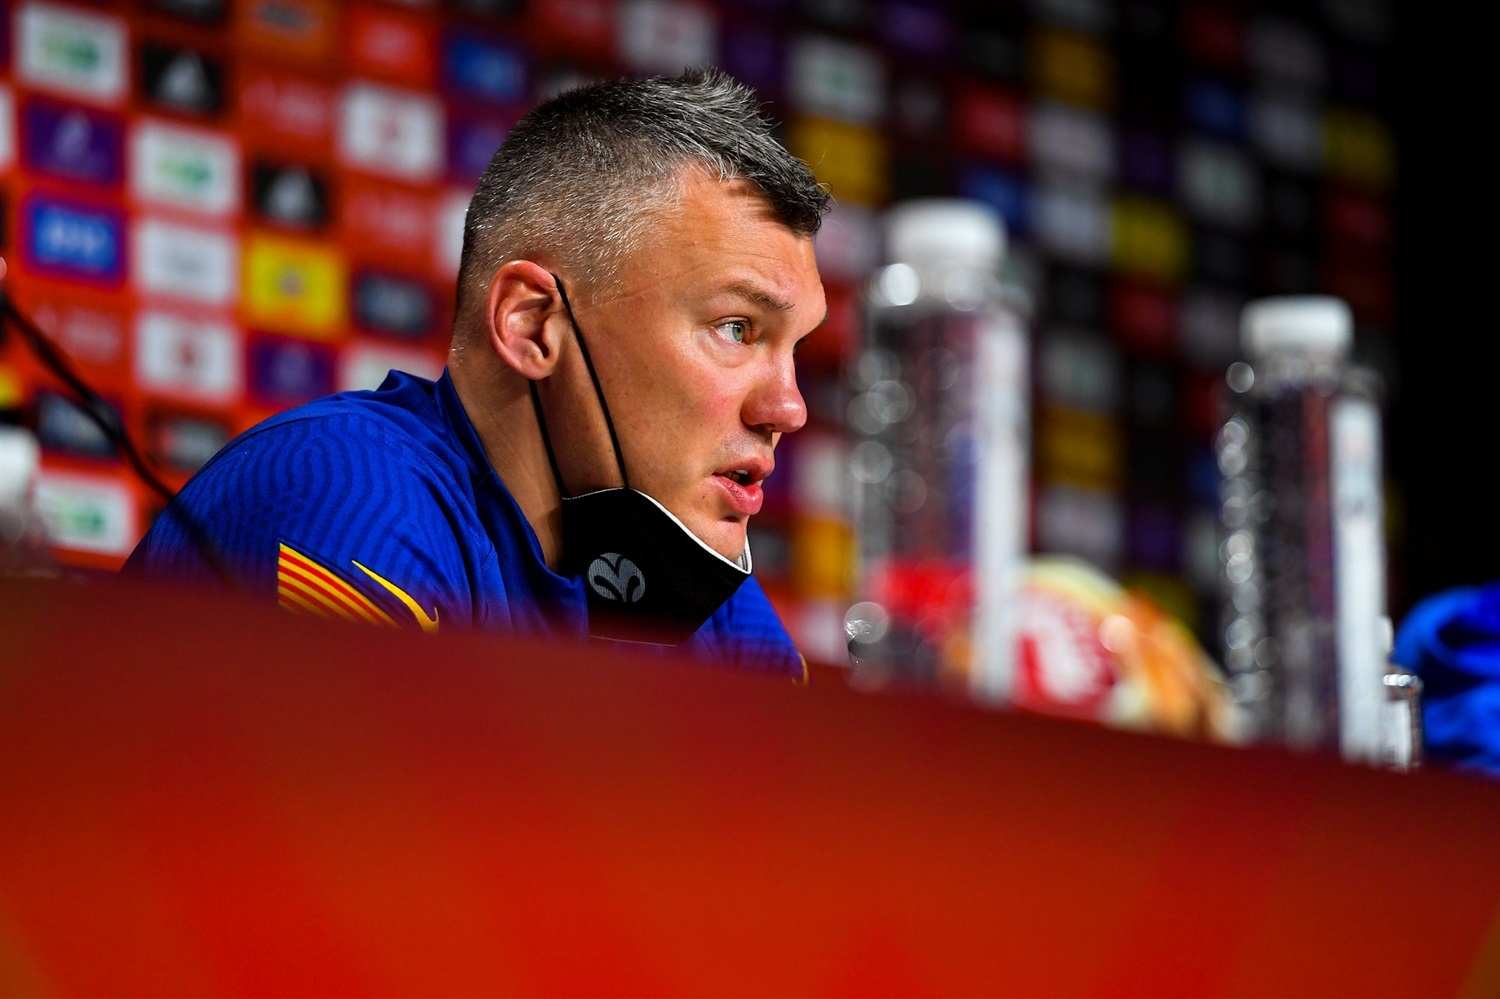 Sarunas Jasikevicius - FC Barcelona - Championship Game press conference - Final Four Cologne 2021 - EB20